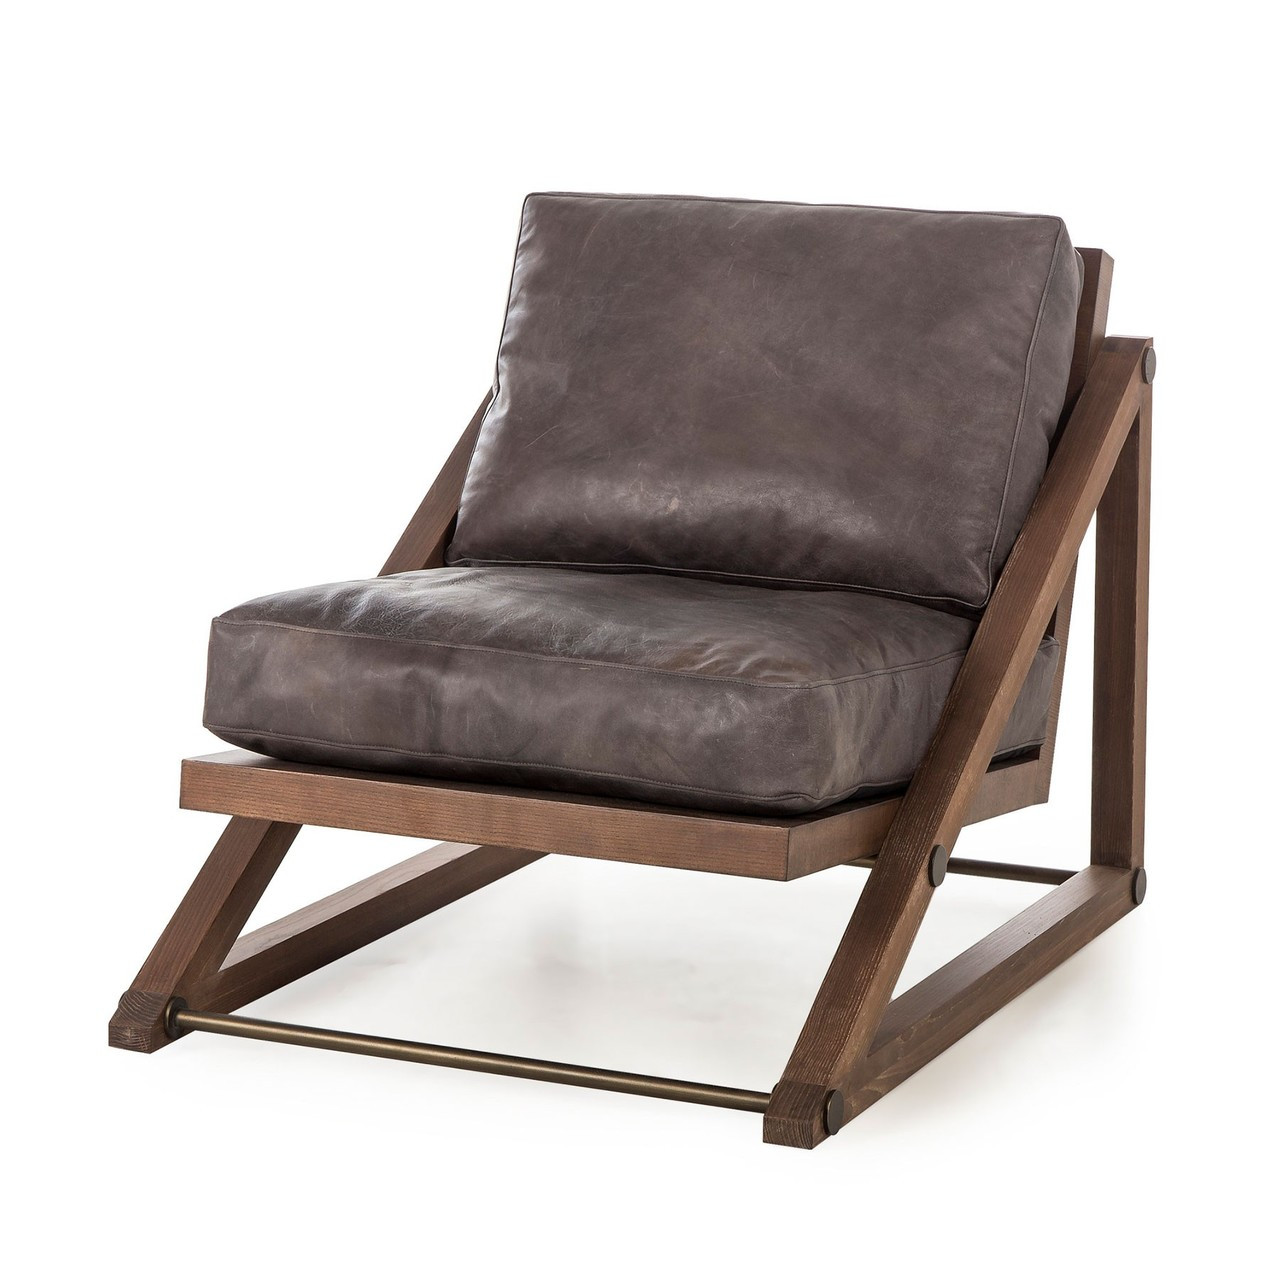 Leather Lounge Teddy Espresso Leather Lounge Chair